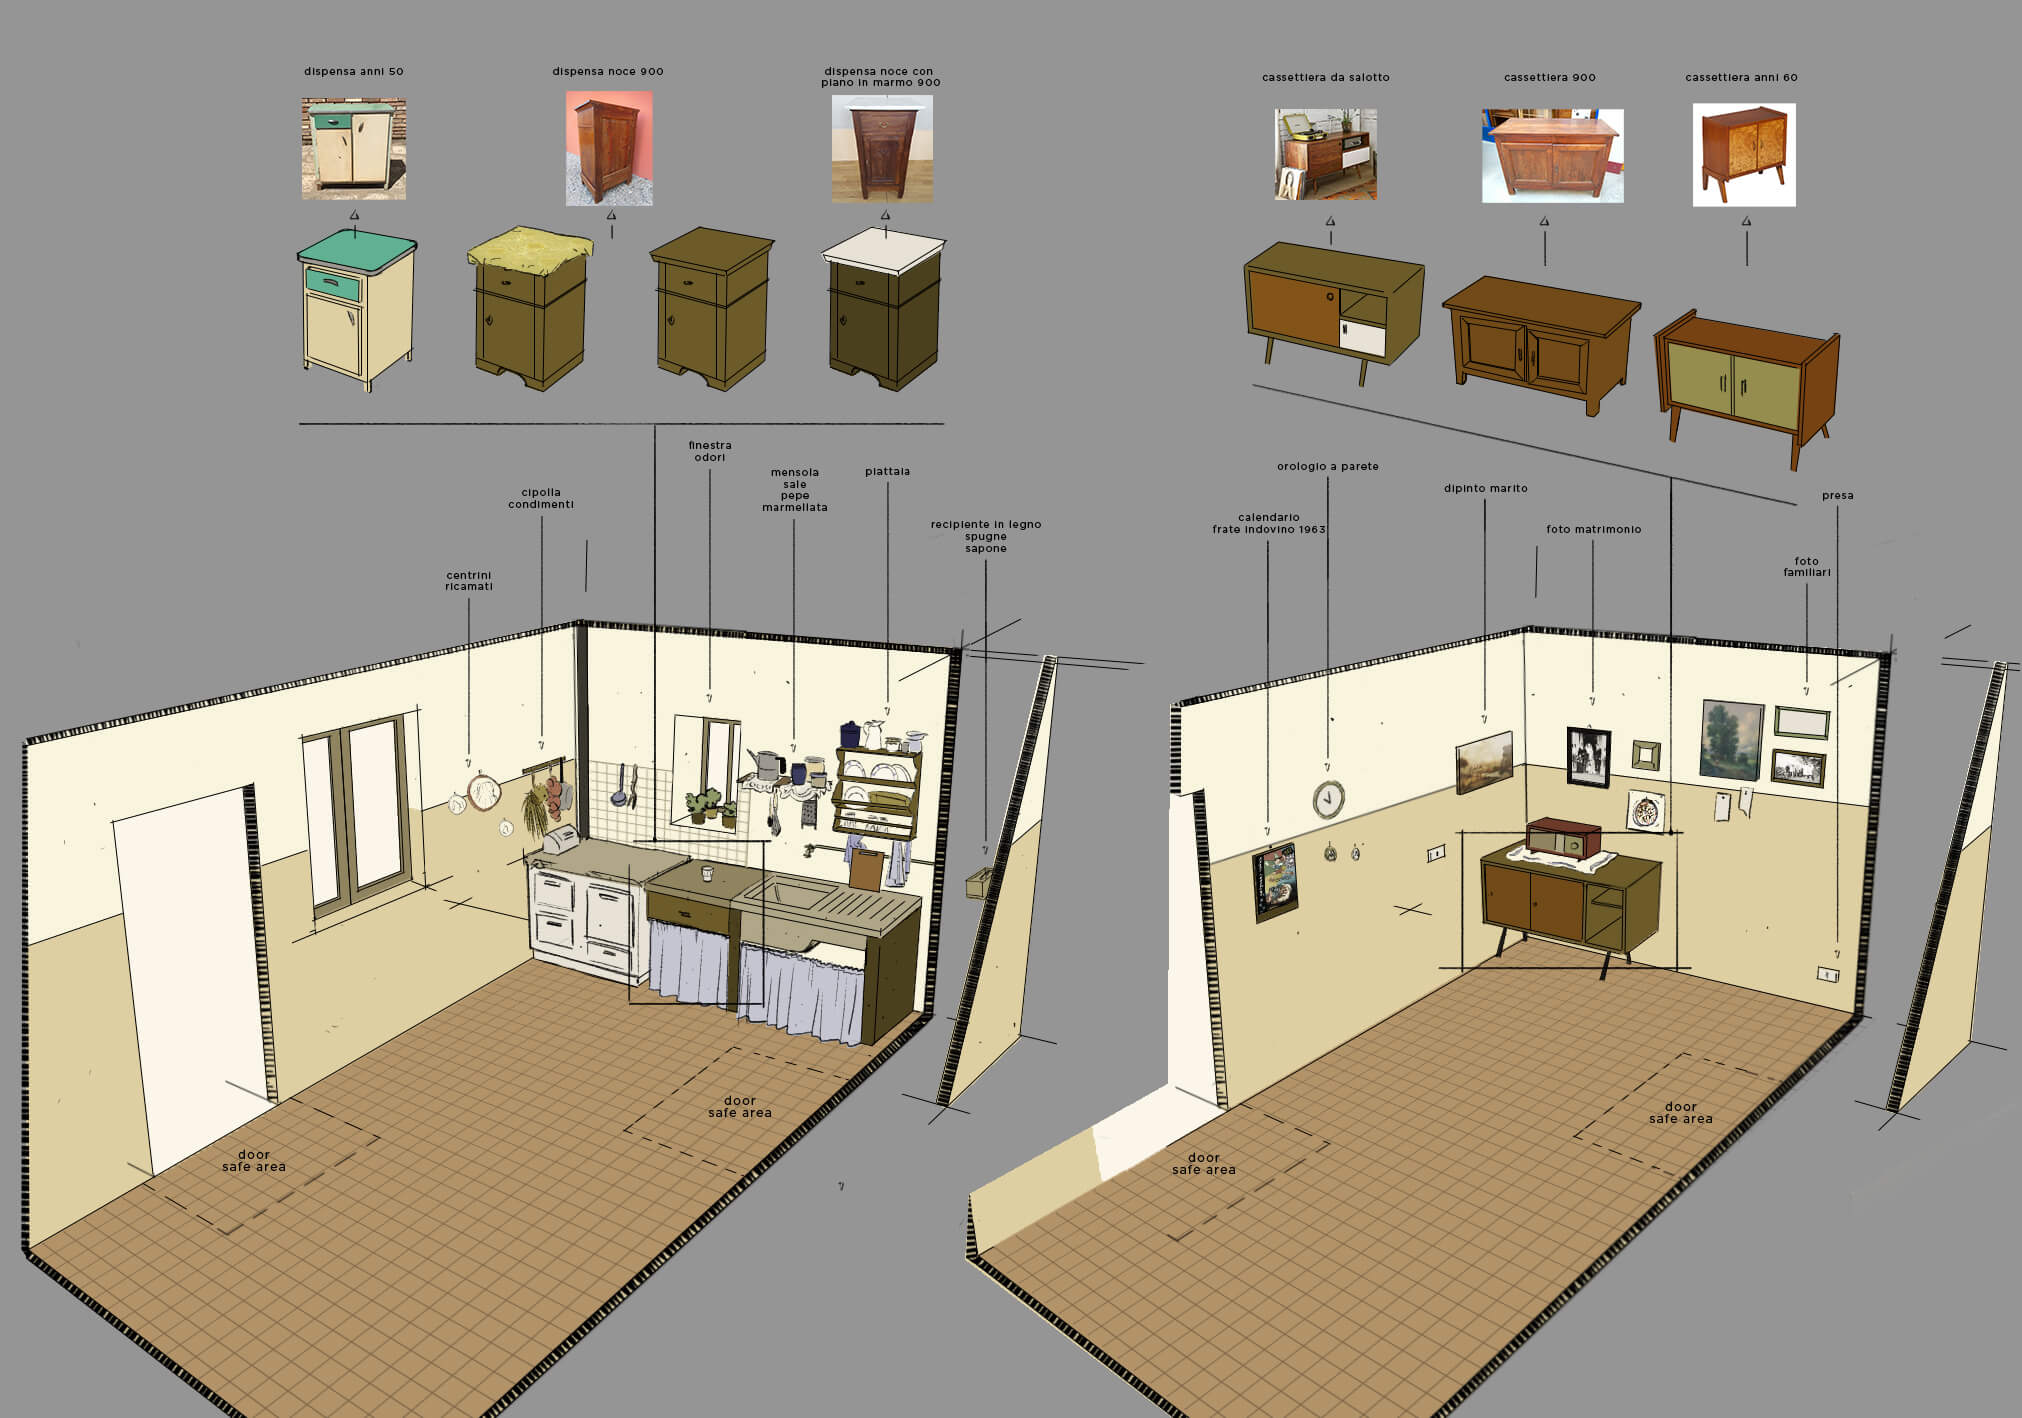 Concept art and plan of a 1960's kitchen